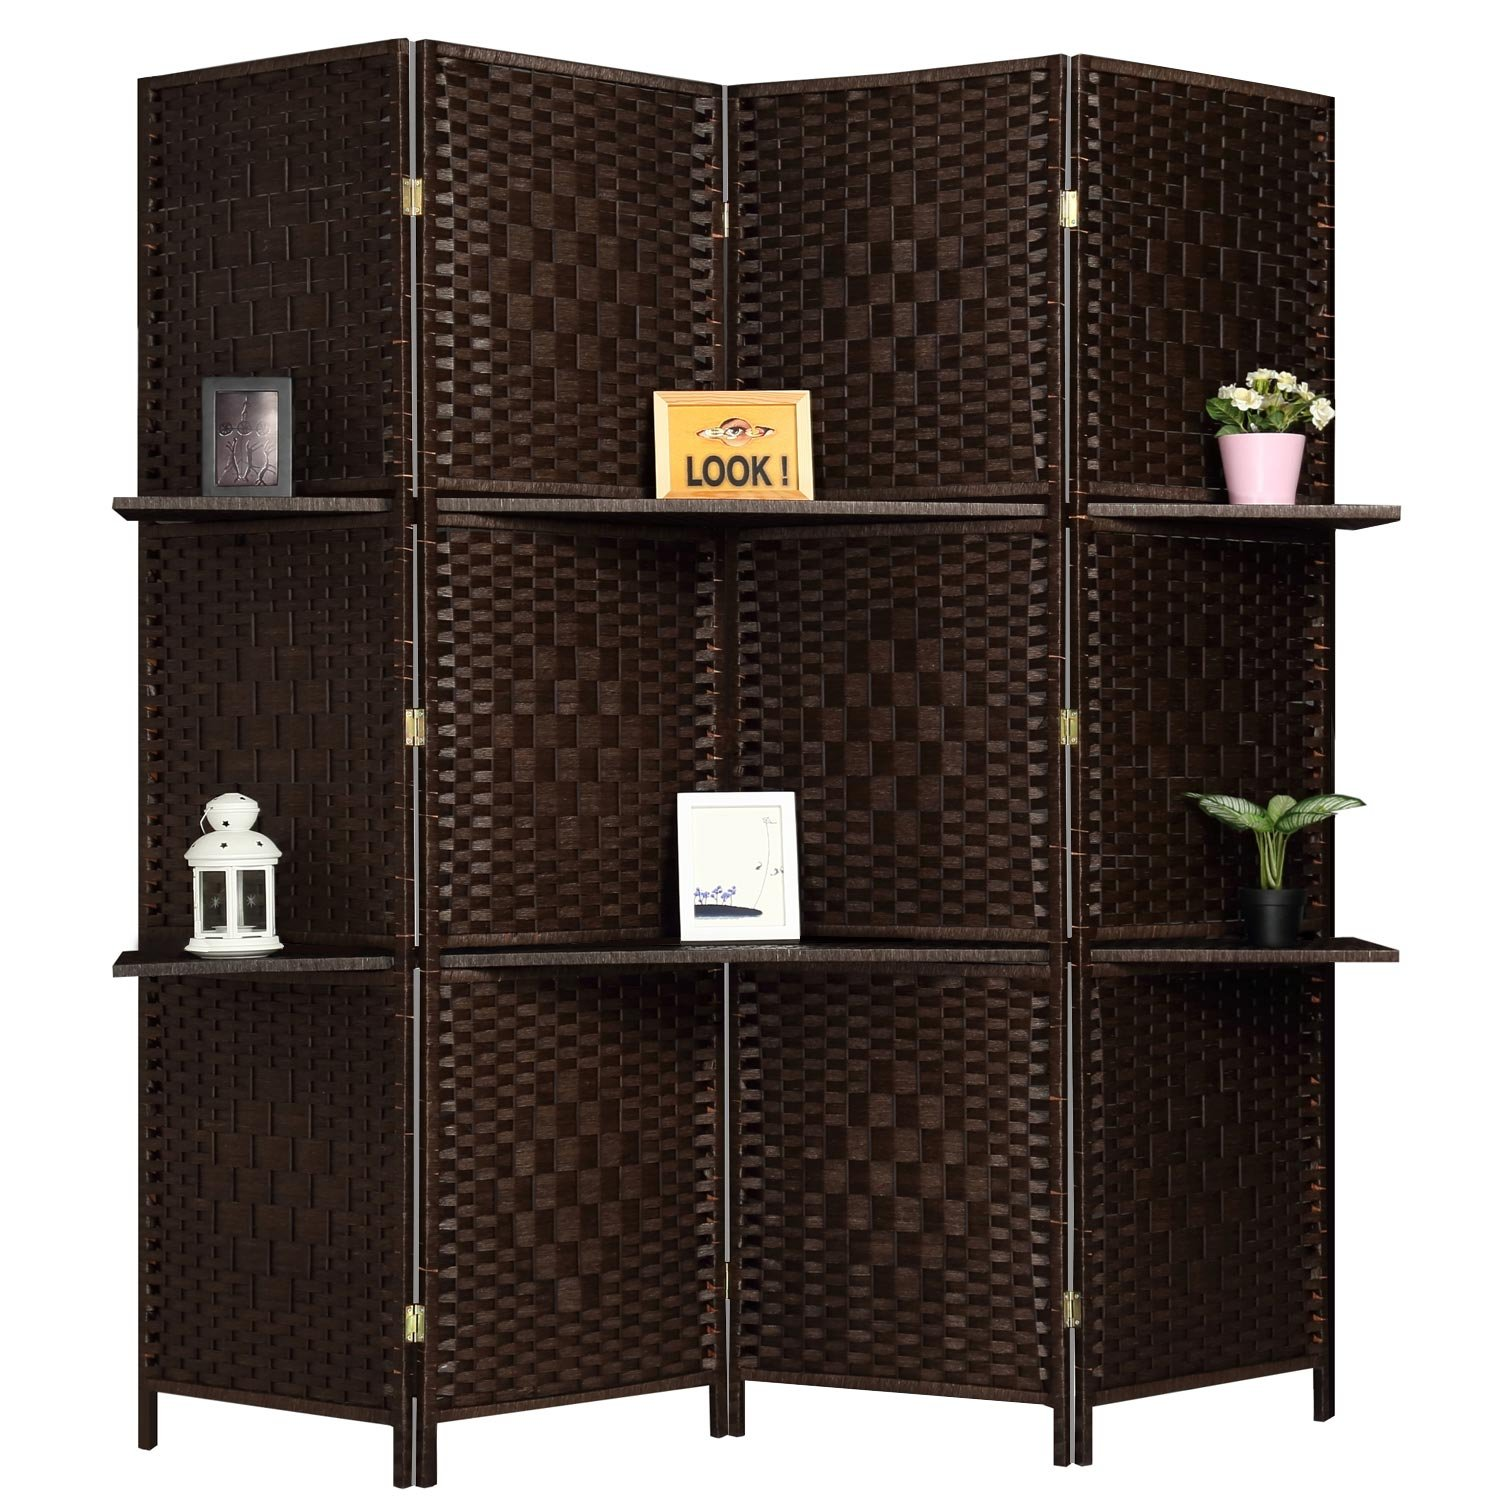 RHF 3 Panel 5.6 Ft Tall Partition Wood Room Divider, Wood Folding Room Divider Screens, Panel Divider&Room Dividers, Room Dividers and Folding Privacy Screens with Shelves (3 Panel, Brown) Rose Home Fashion